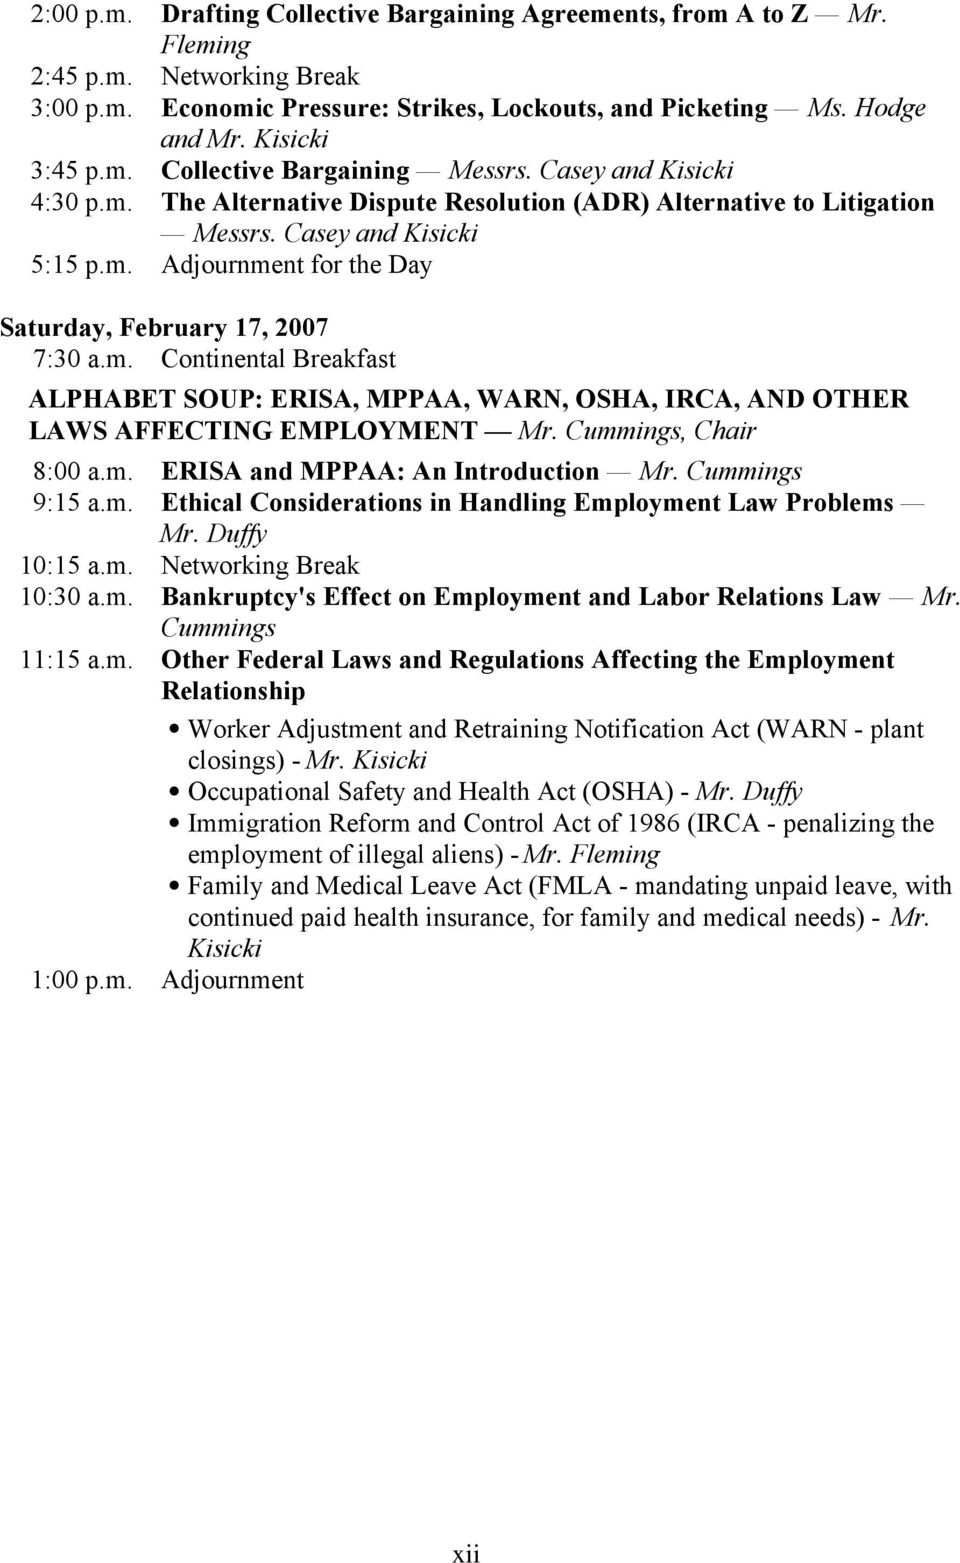 m. Continental Breakfast ALPHABET SOUP: ERISA, MPPAA, WARN, OSHA, IRCA, AND OTHER LAWS AFFECTING EMPLOYMENT Mr. Cummings, Chair 8:00 a.m. ERISA and MPPAA: An Introduction Mr. Cummings 9:15 a.m. Ethical Considerations in Handling Employment Law Problems Mr.